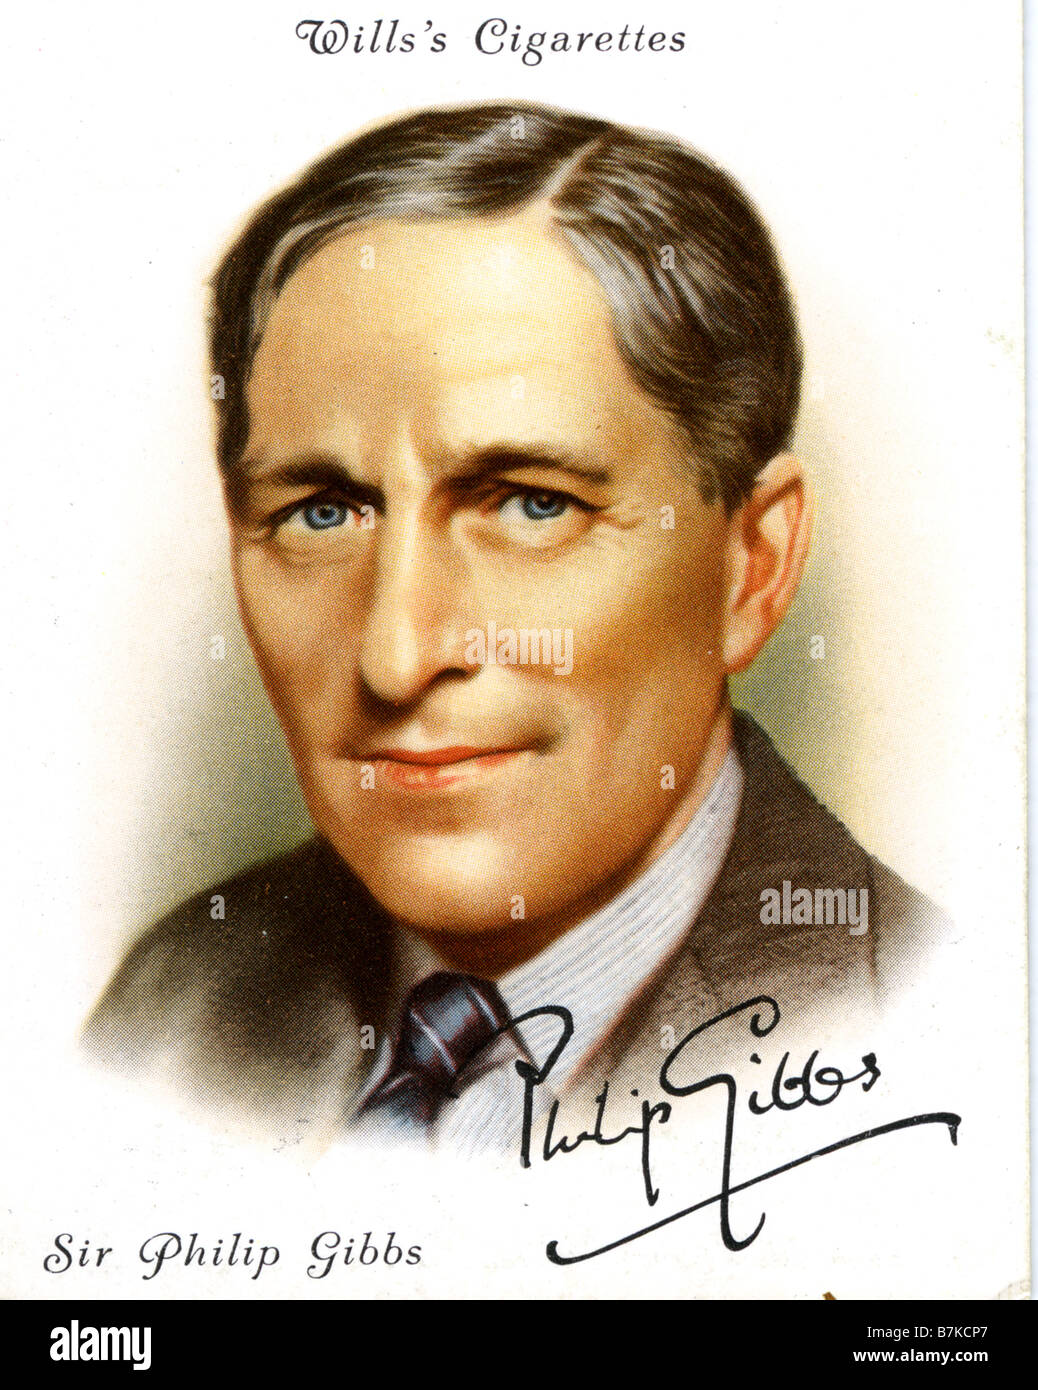 PHILLIP GIBBS  English writer show on a 1930s cigarette card - Stock Image